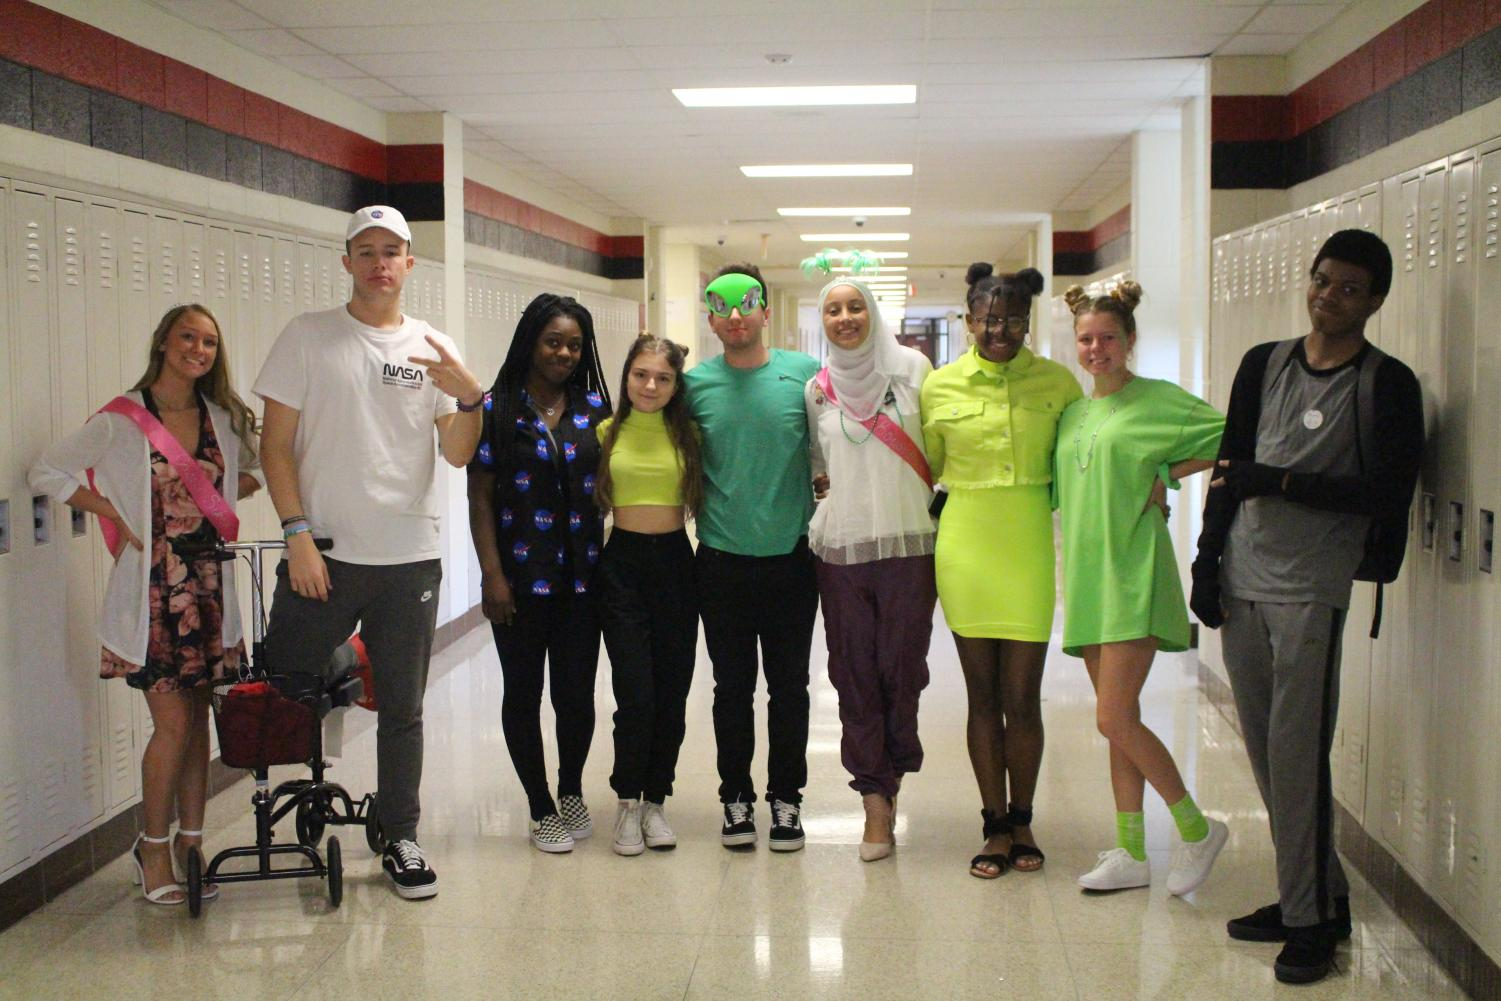 News and broadcasting students dressed in their best